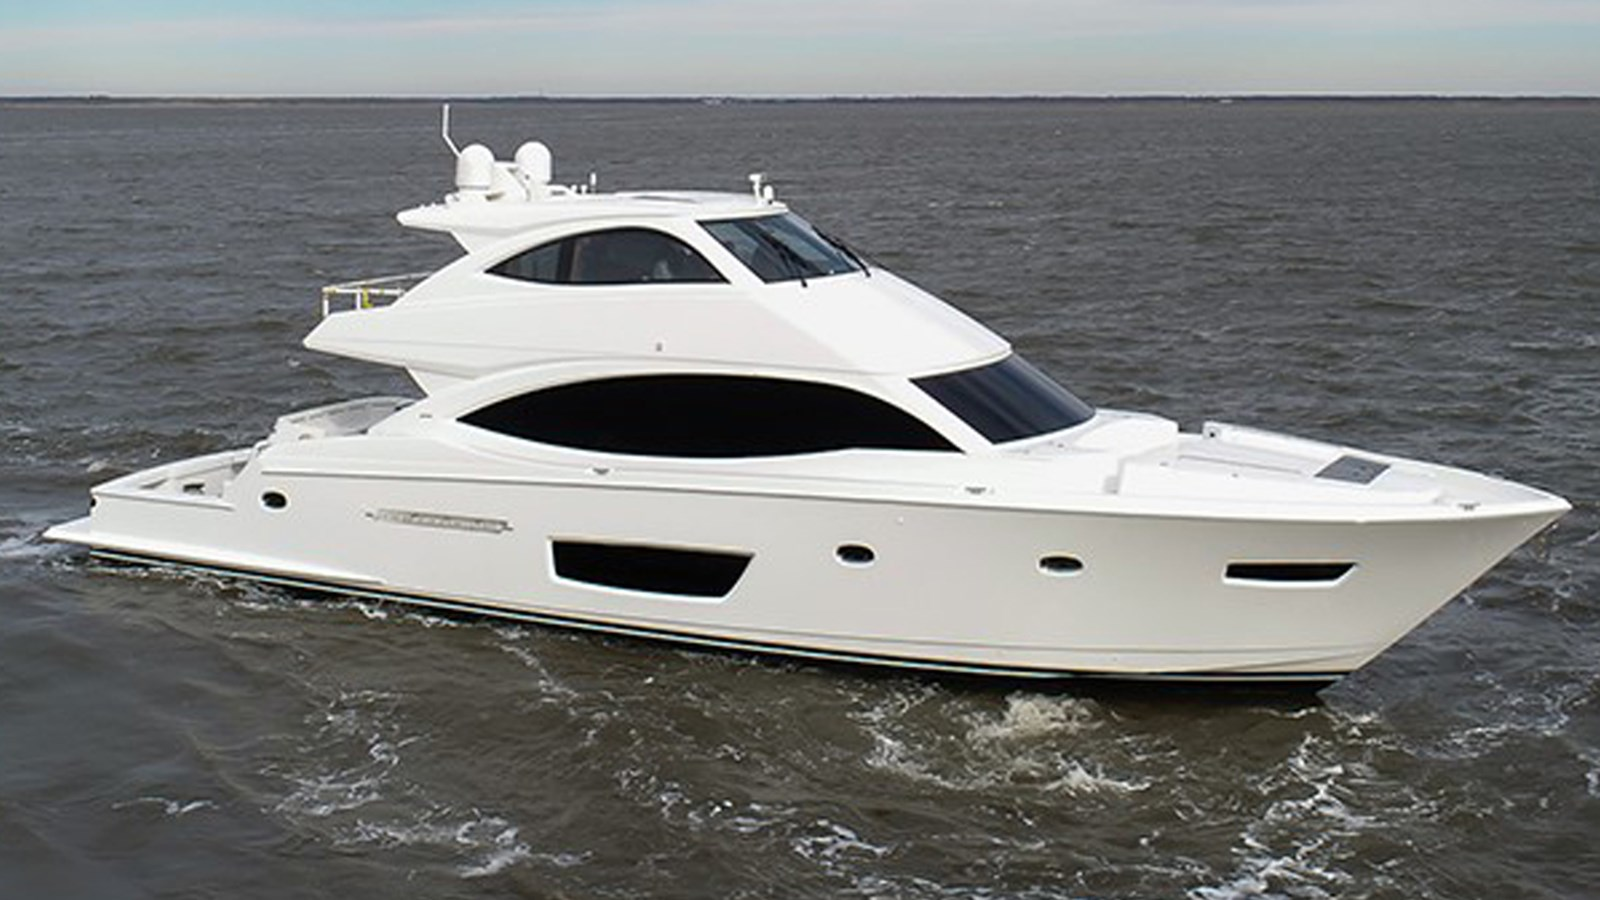 2018 VIKING 82 Cockpit Motor Yacht (VK82-302) For Sale